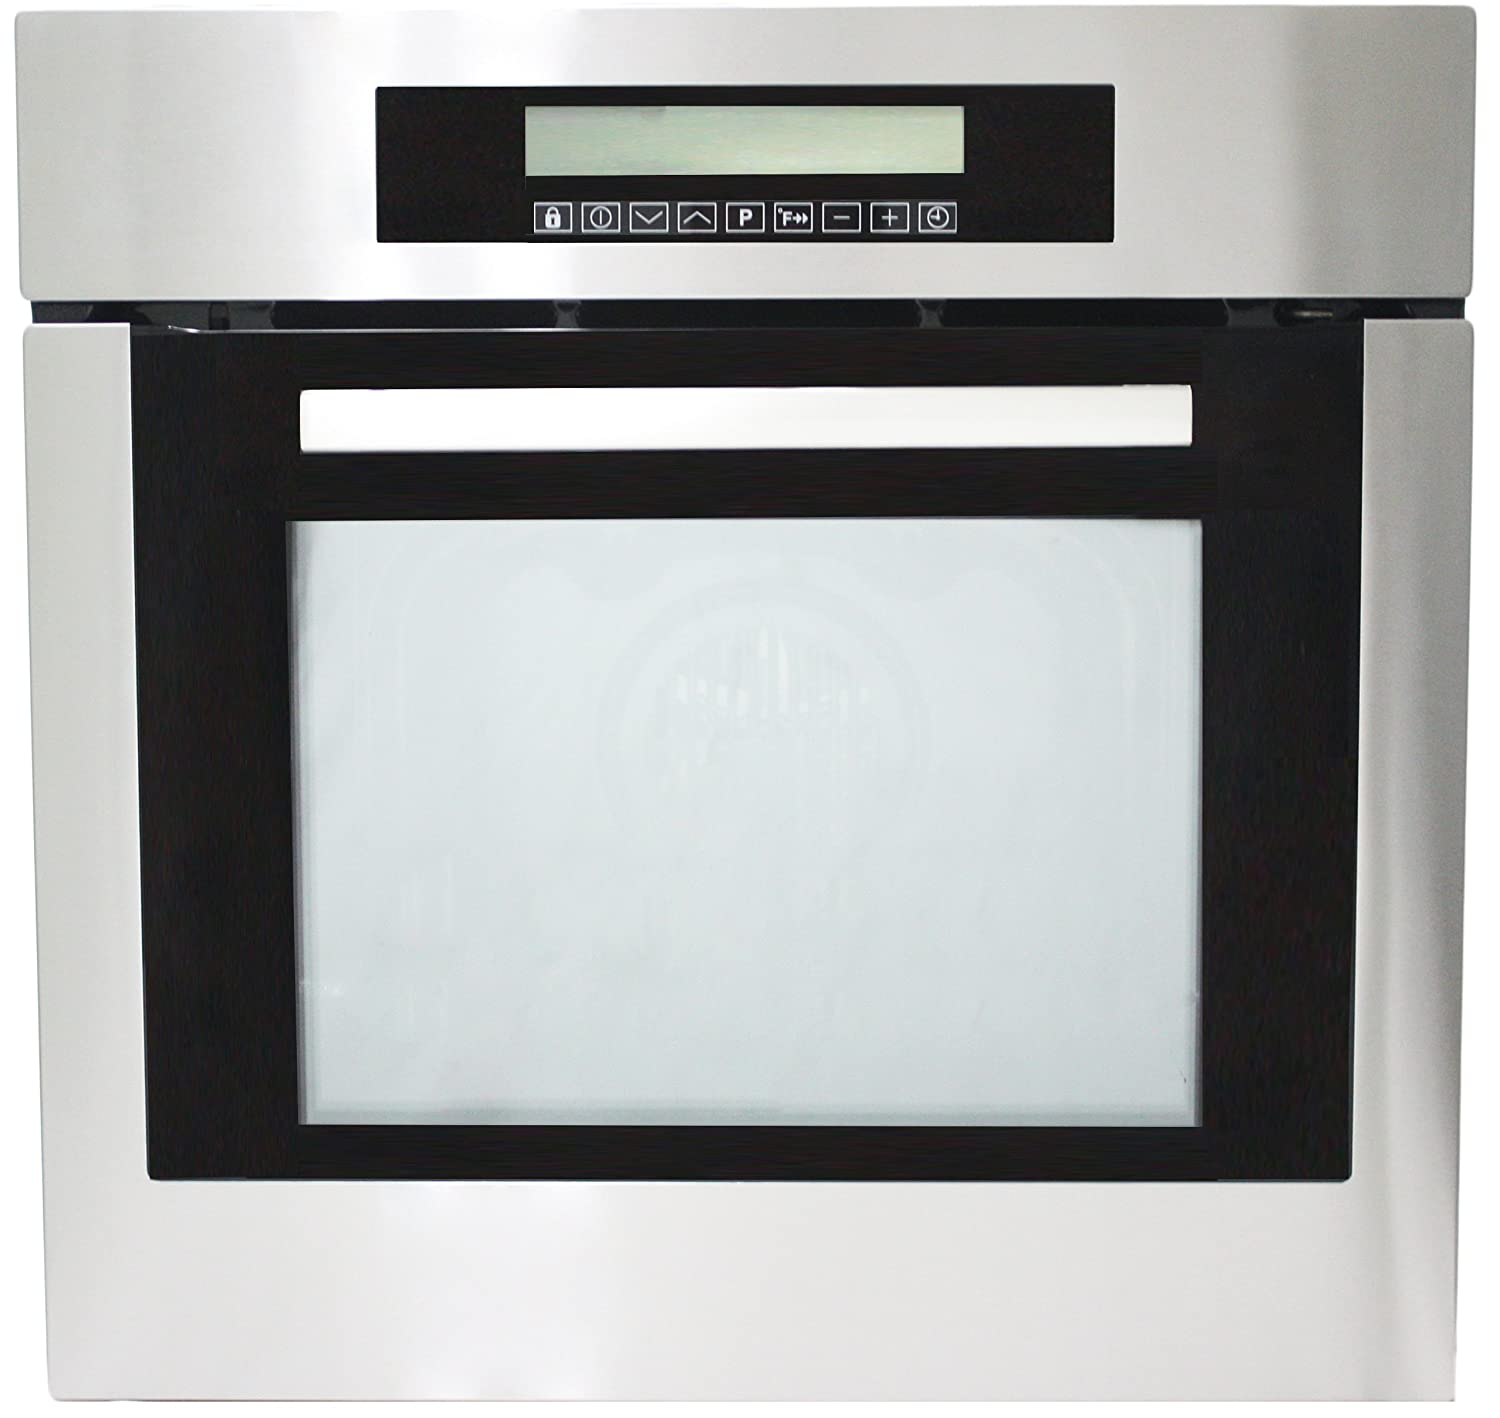 "Cosmo 24"" Stainless Steel Electric Wall Oven with 10-functions"